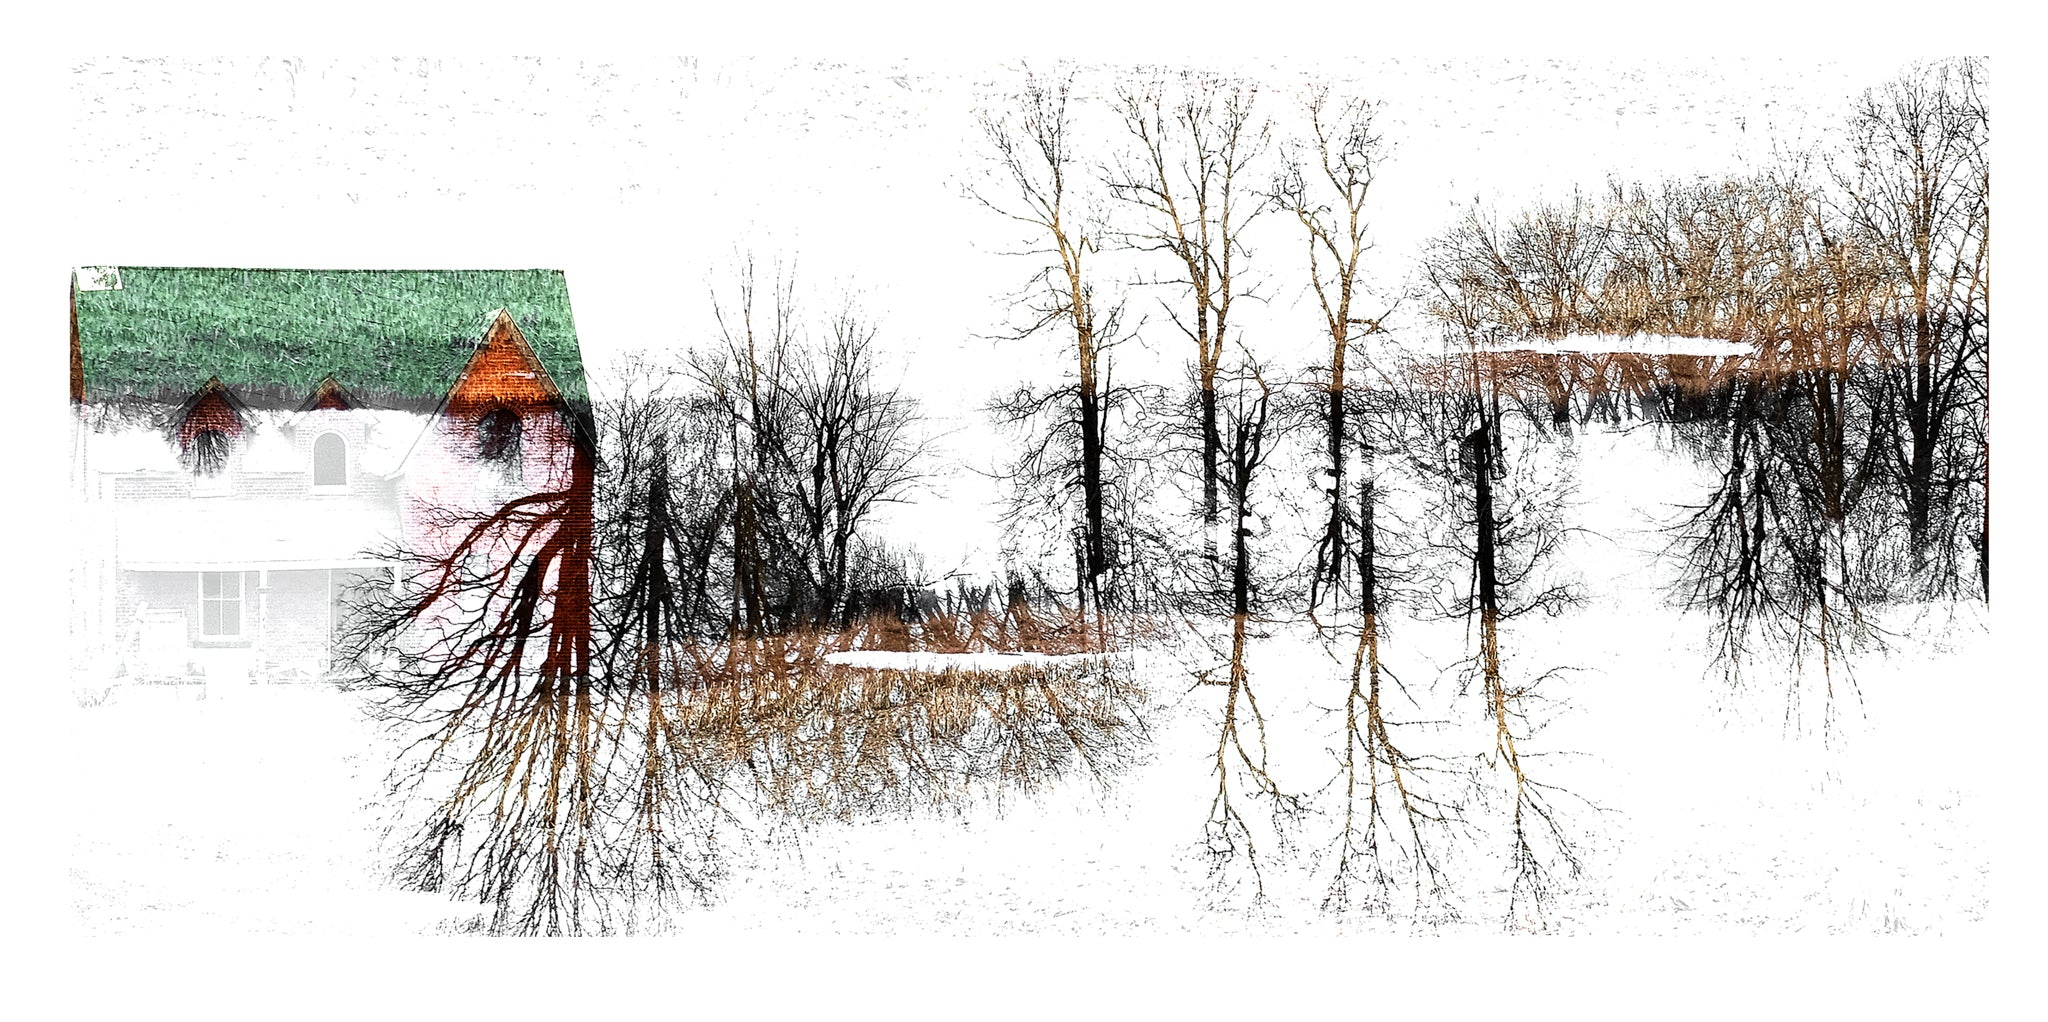 'Red Barn' - Inverted Double Exposure